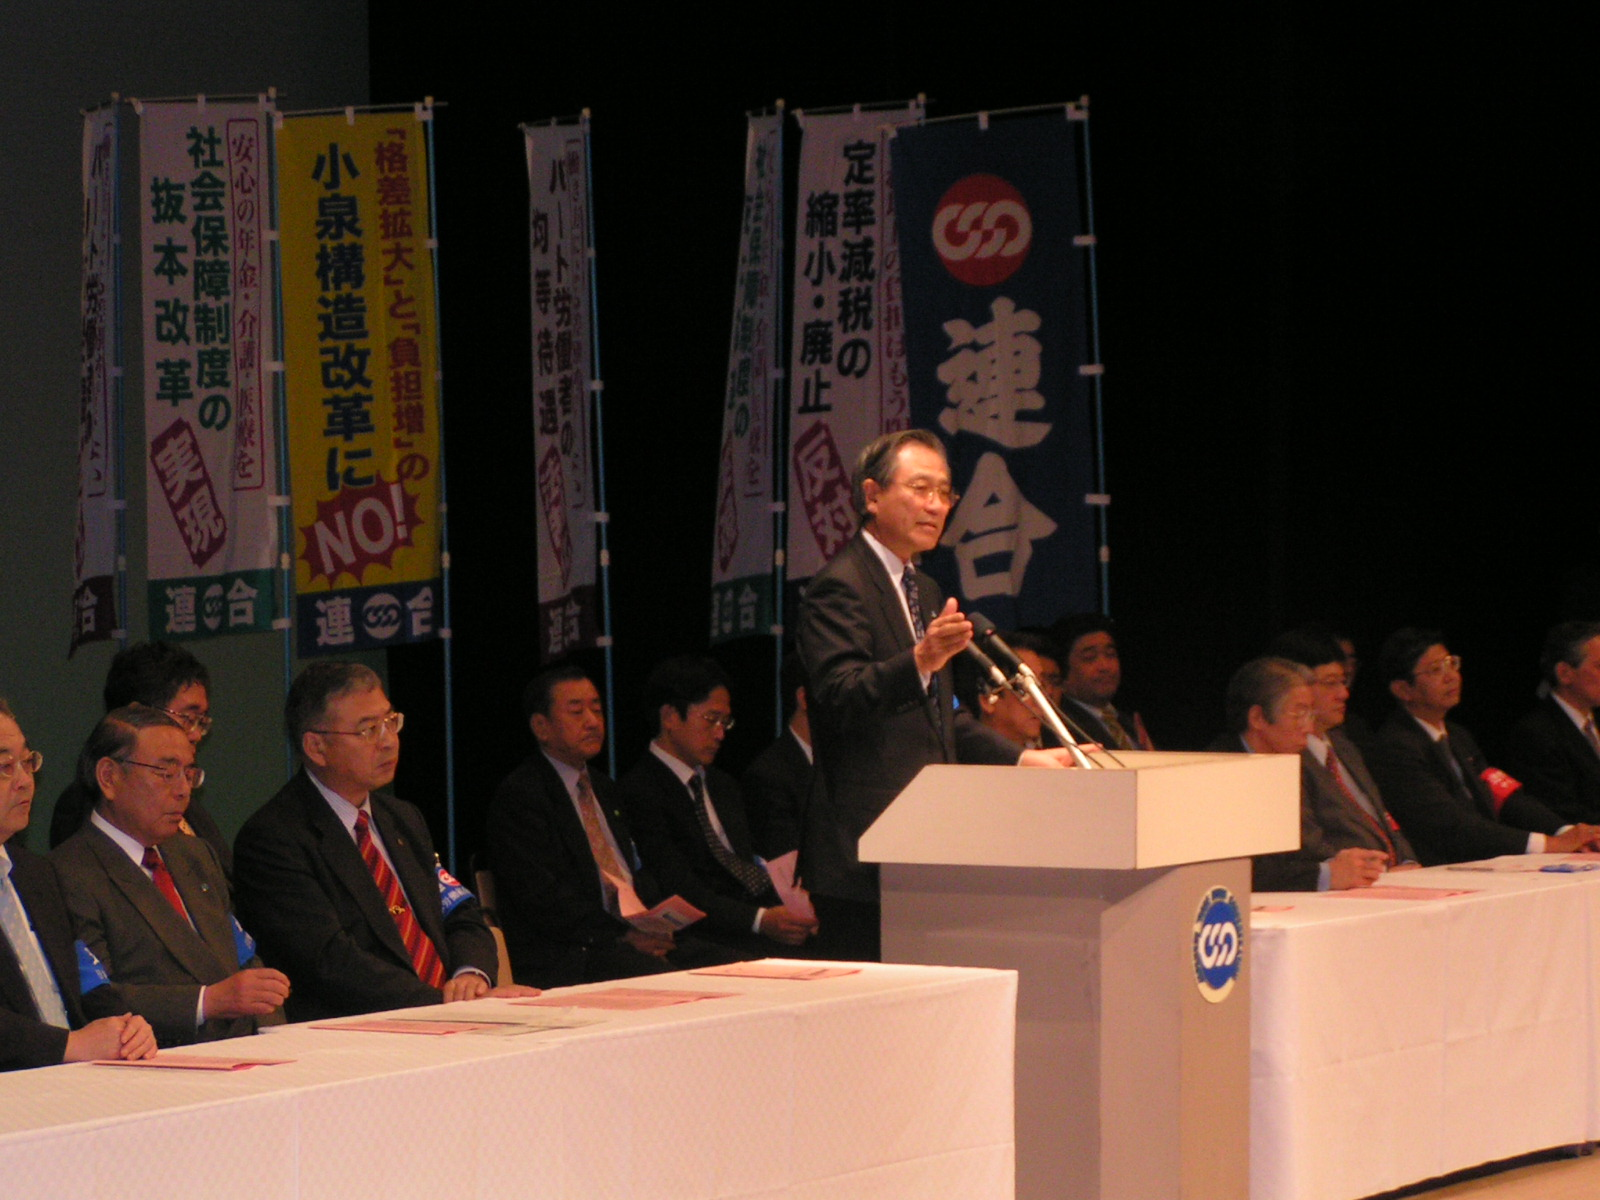 Photo: Central Struggle Committee Chair Sasamori speaking to the participants. (February 9, Bunkyo Civic Hall)